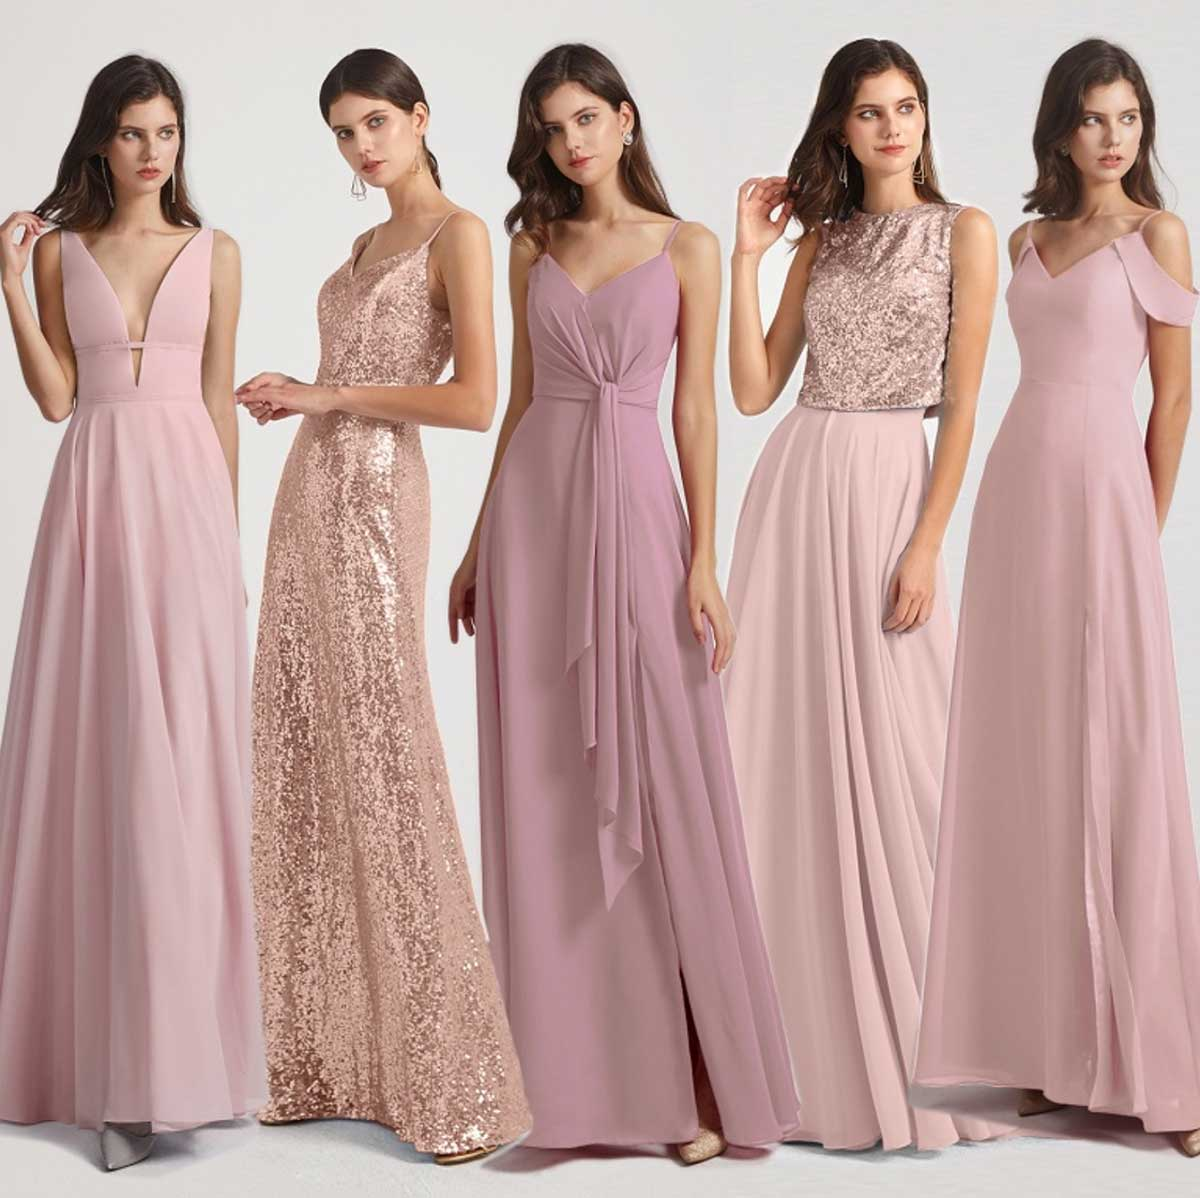 Different-Dress-Styles-and-Colors